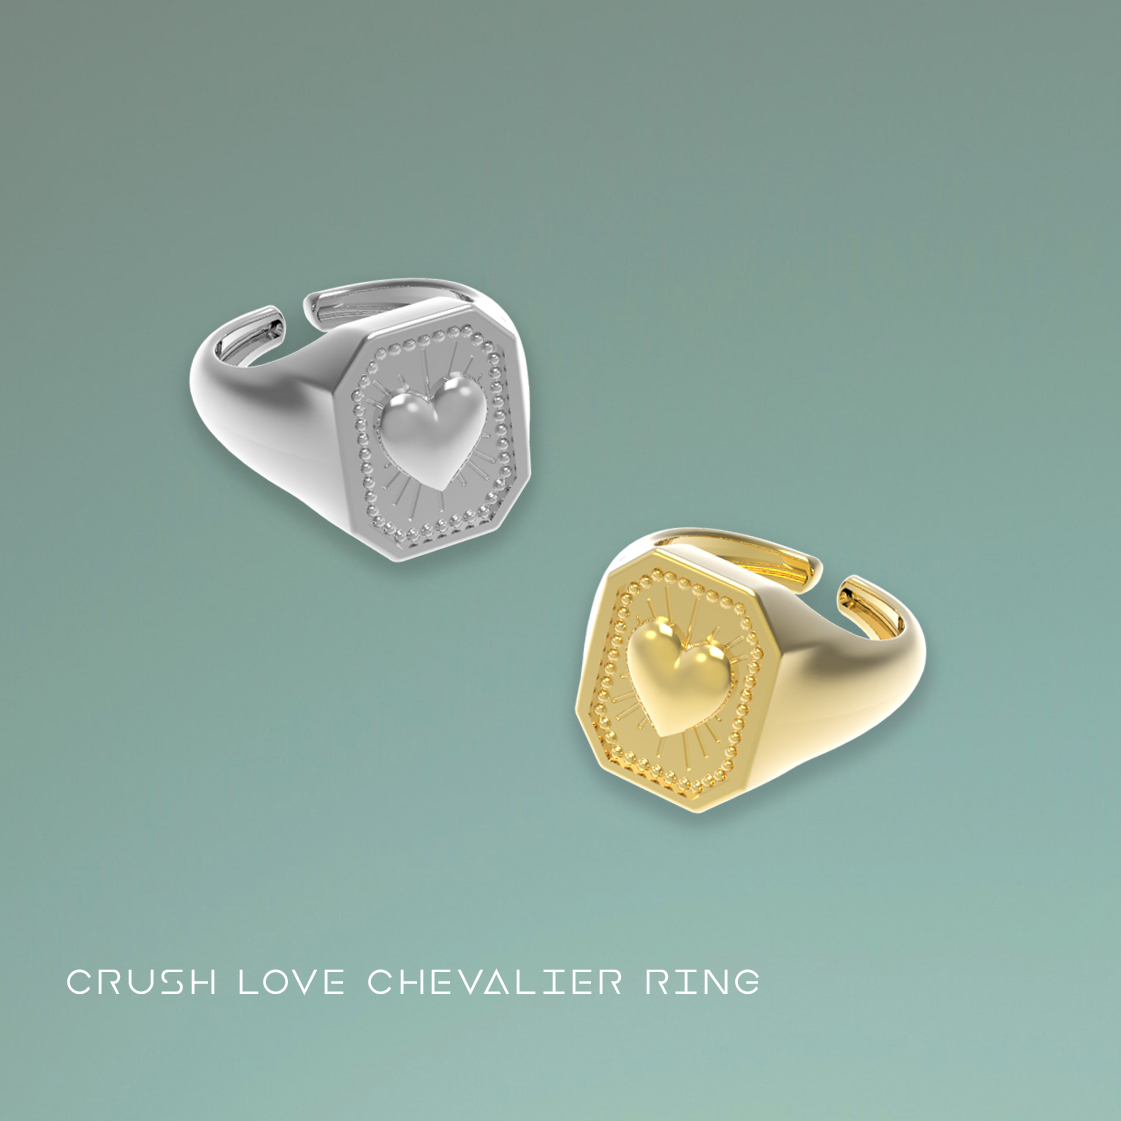 render_1.jpg Download free STL file CRUSH LOVE CHEVALIER RING • 3D printable object, Genny